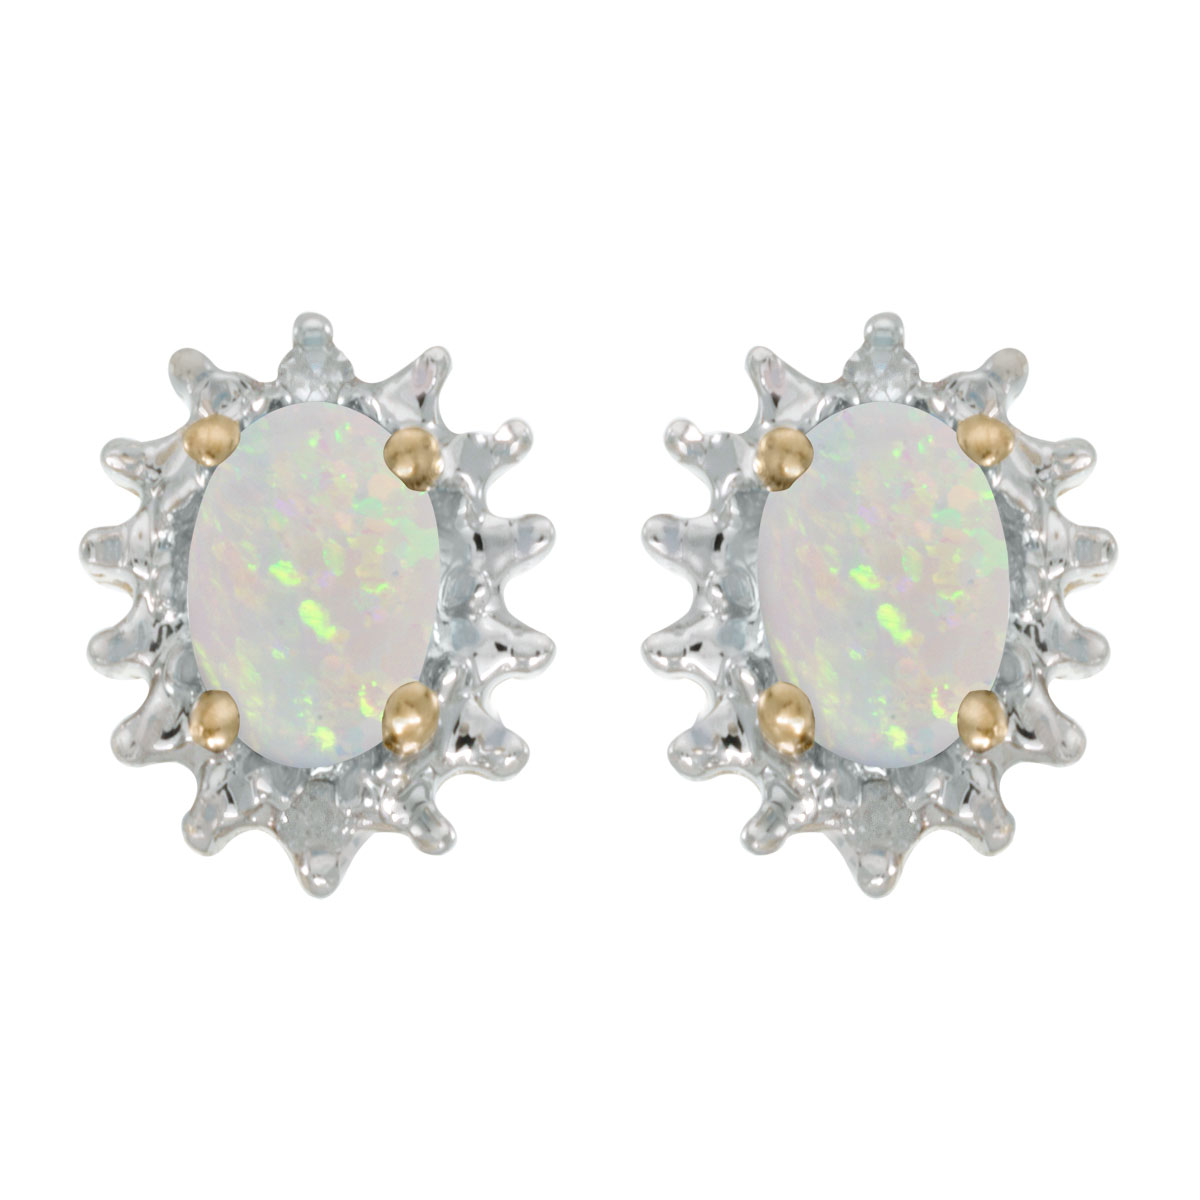 These 14k yellow gold oval opal and diamond earrings feature 6x4 mm genuine natural opals with a 0.38 ct total weight and .04 ct diamonds.